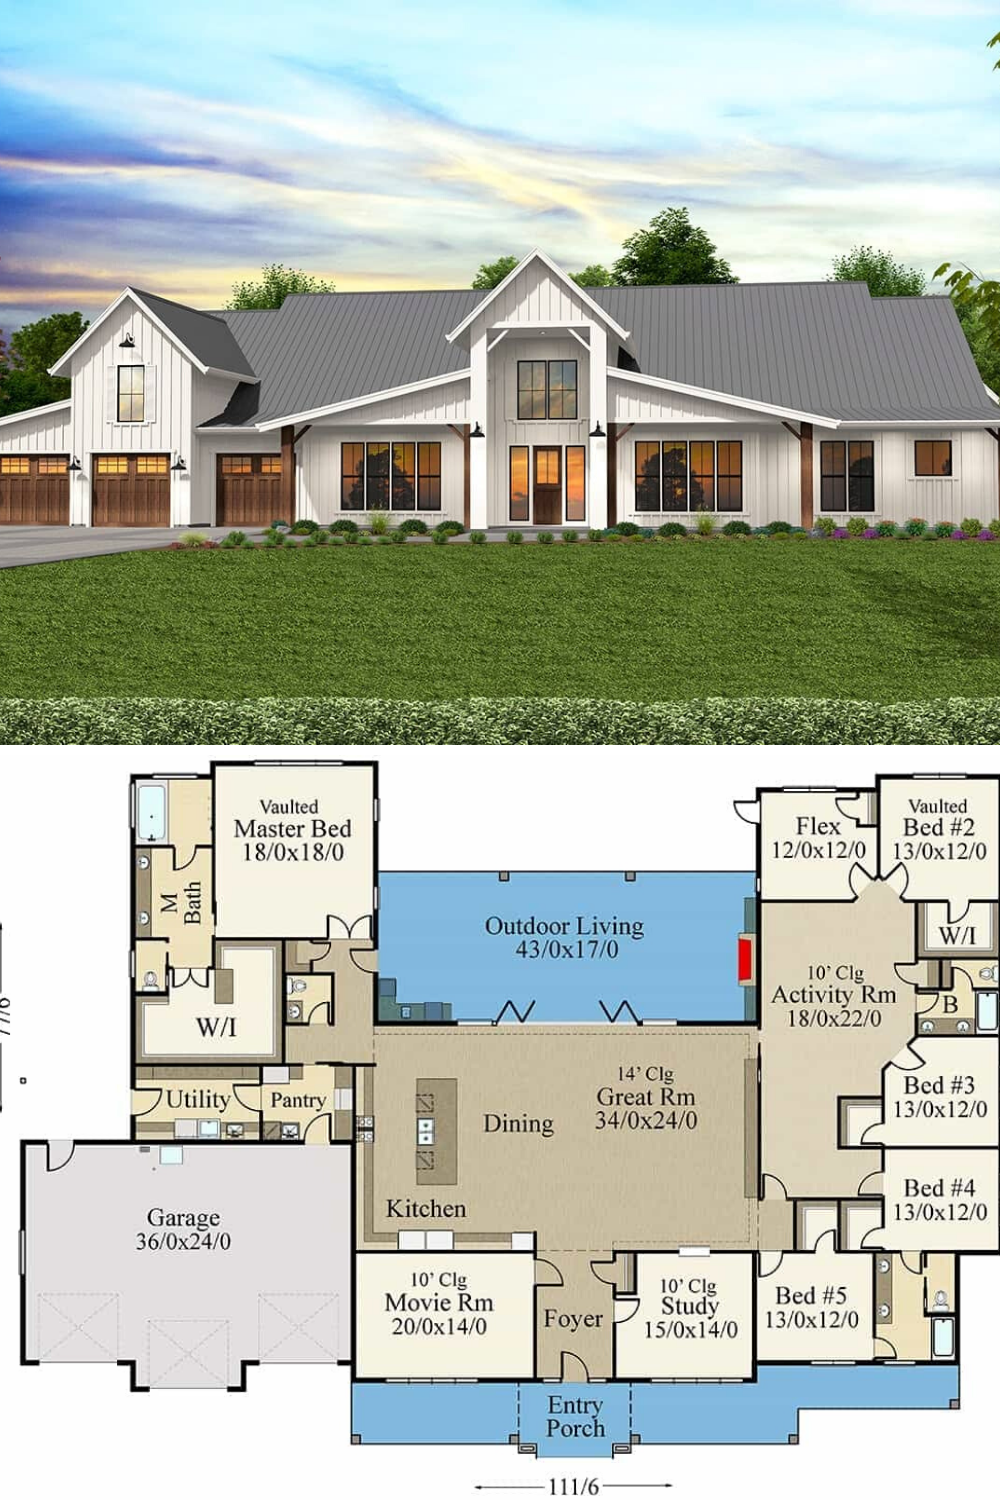 Single Story 6 Bedroom Modern Barn Home With Outdoor Living Floor Plan Barn Style House Plans Craftsman House Plans Modern Farmhouse Plans